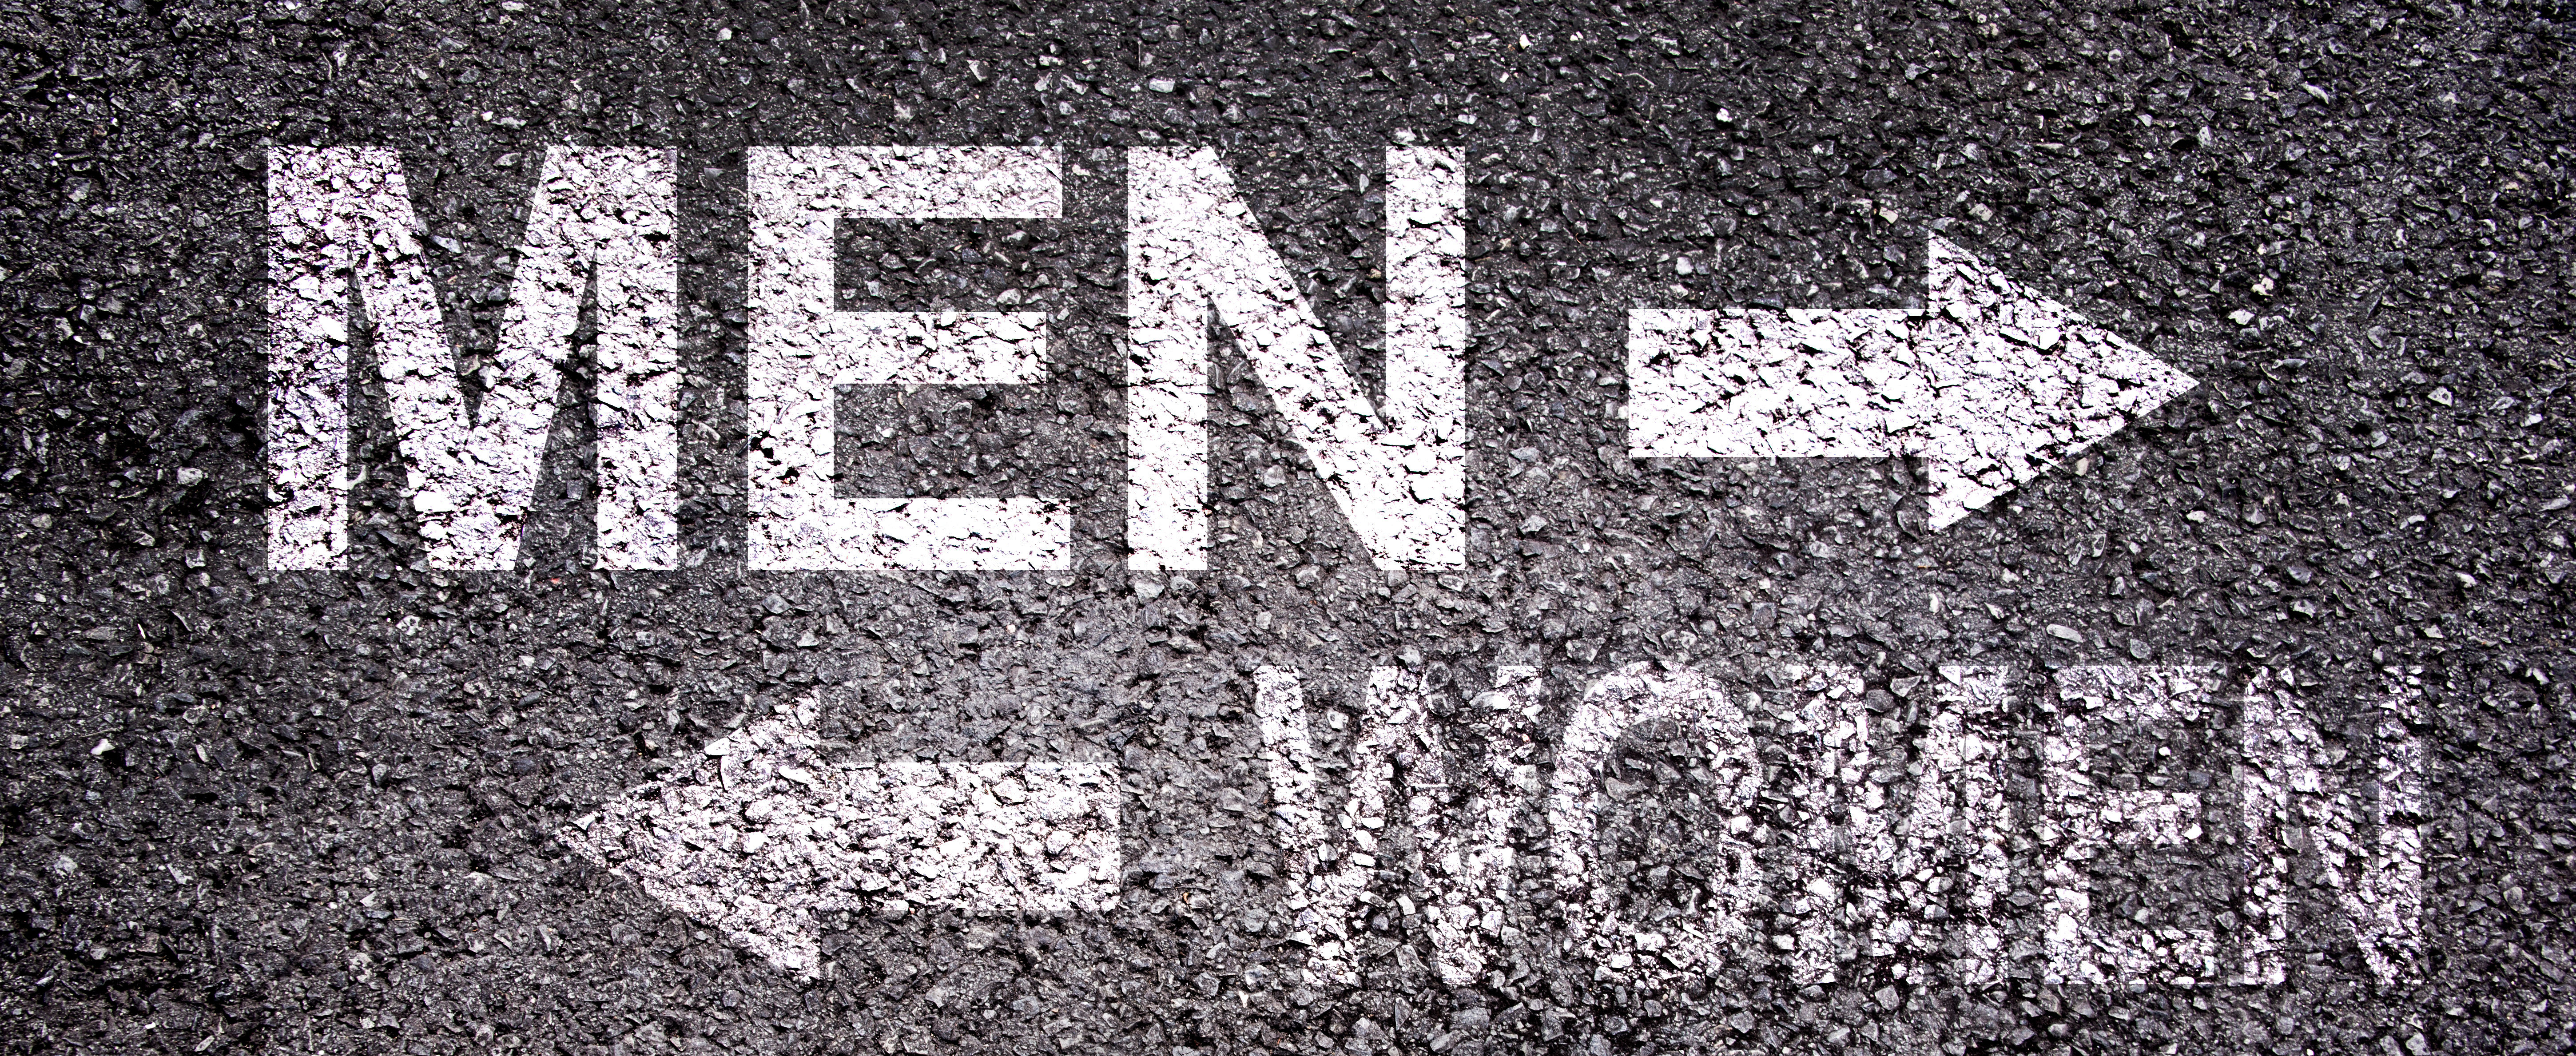 Picture of Asphalt with 'Men' and 'Women' sprayed into the ground with opposing arrows